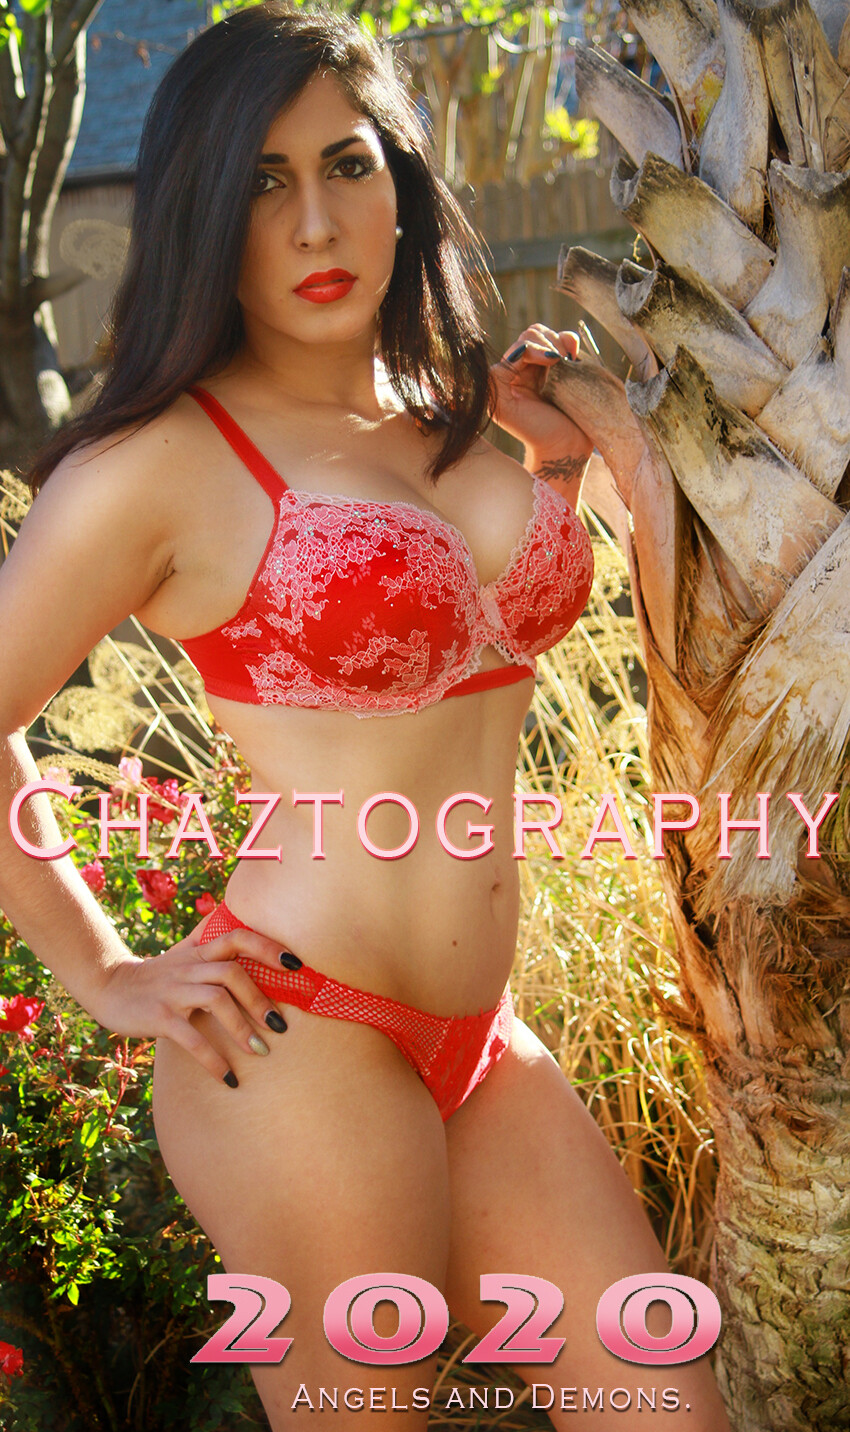 Chaztography. Angels and Demons. 2021 Calendar